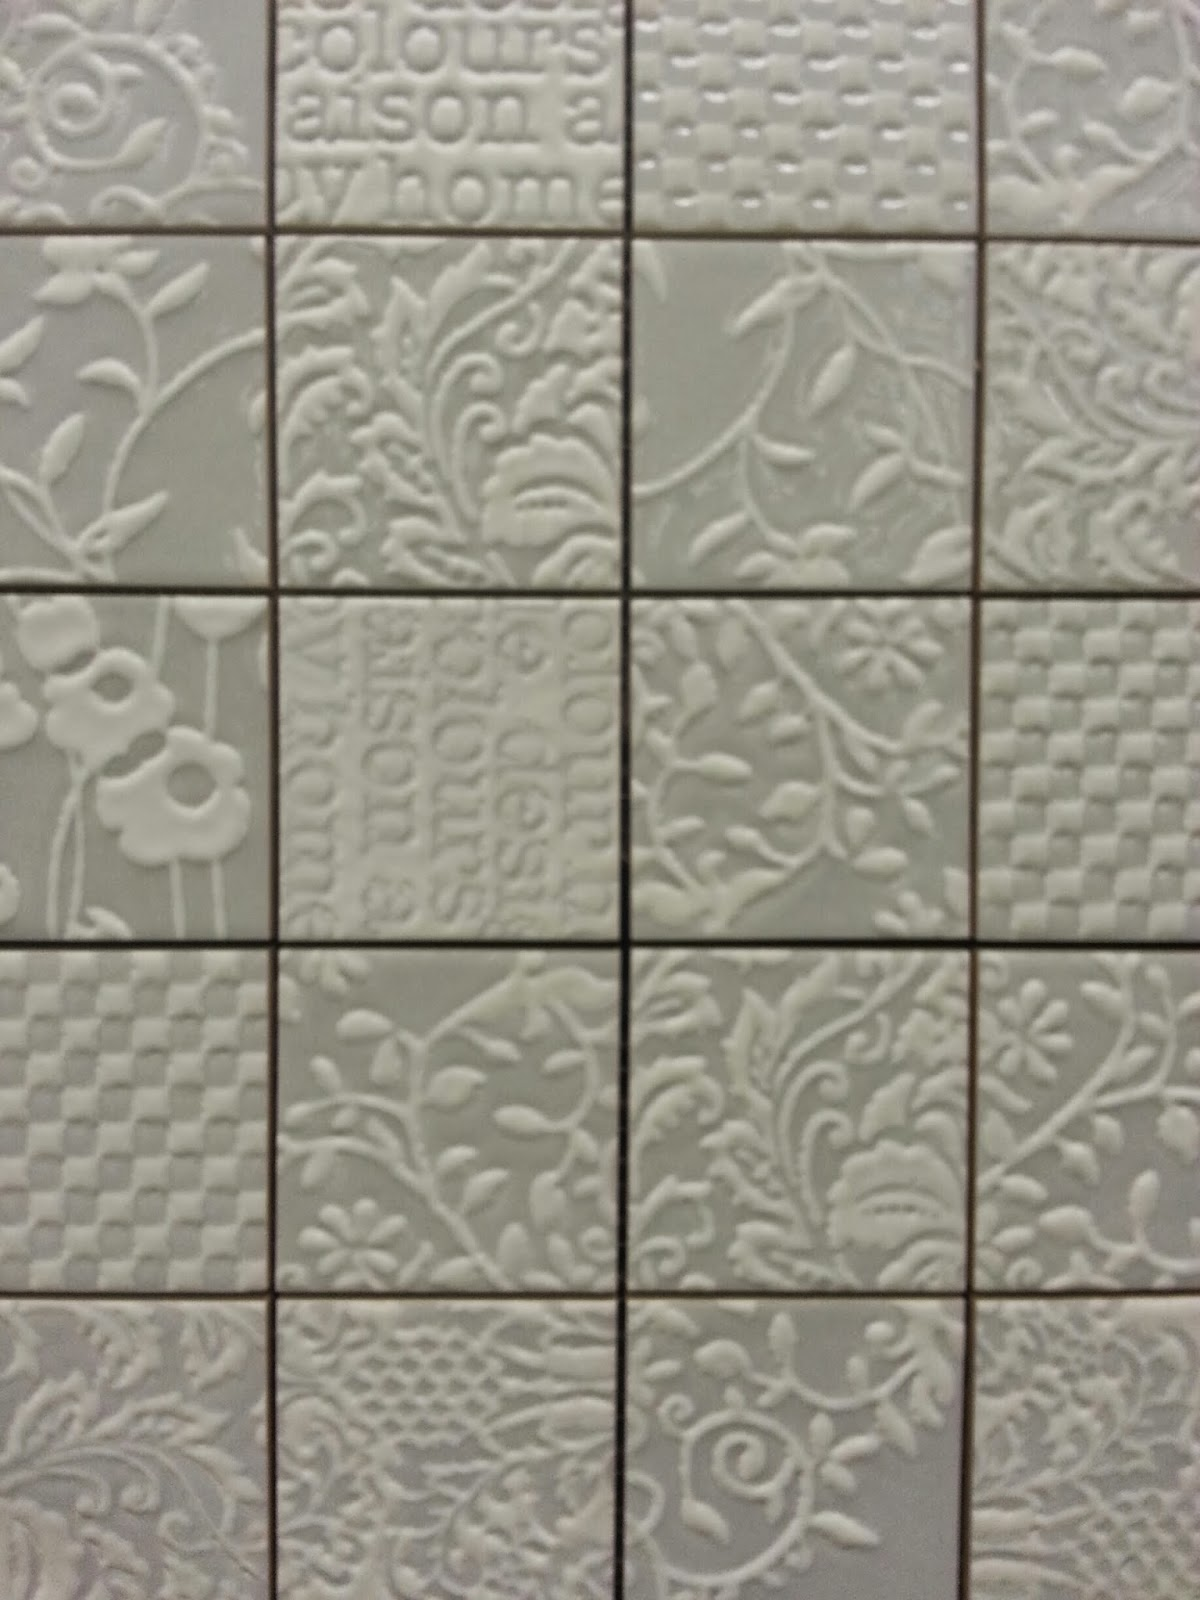 To da loos: New tile alert: Patterned patchwork wall tiles